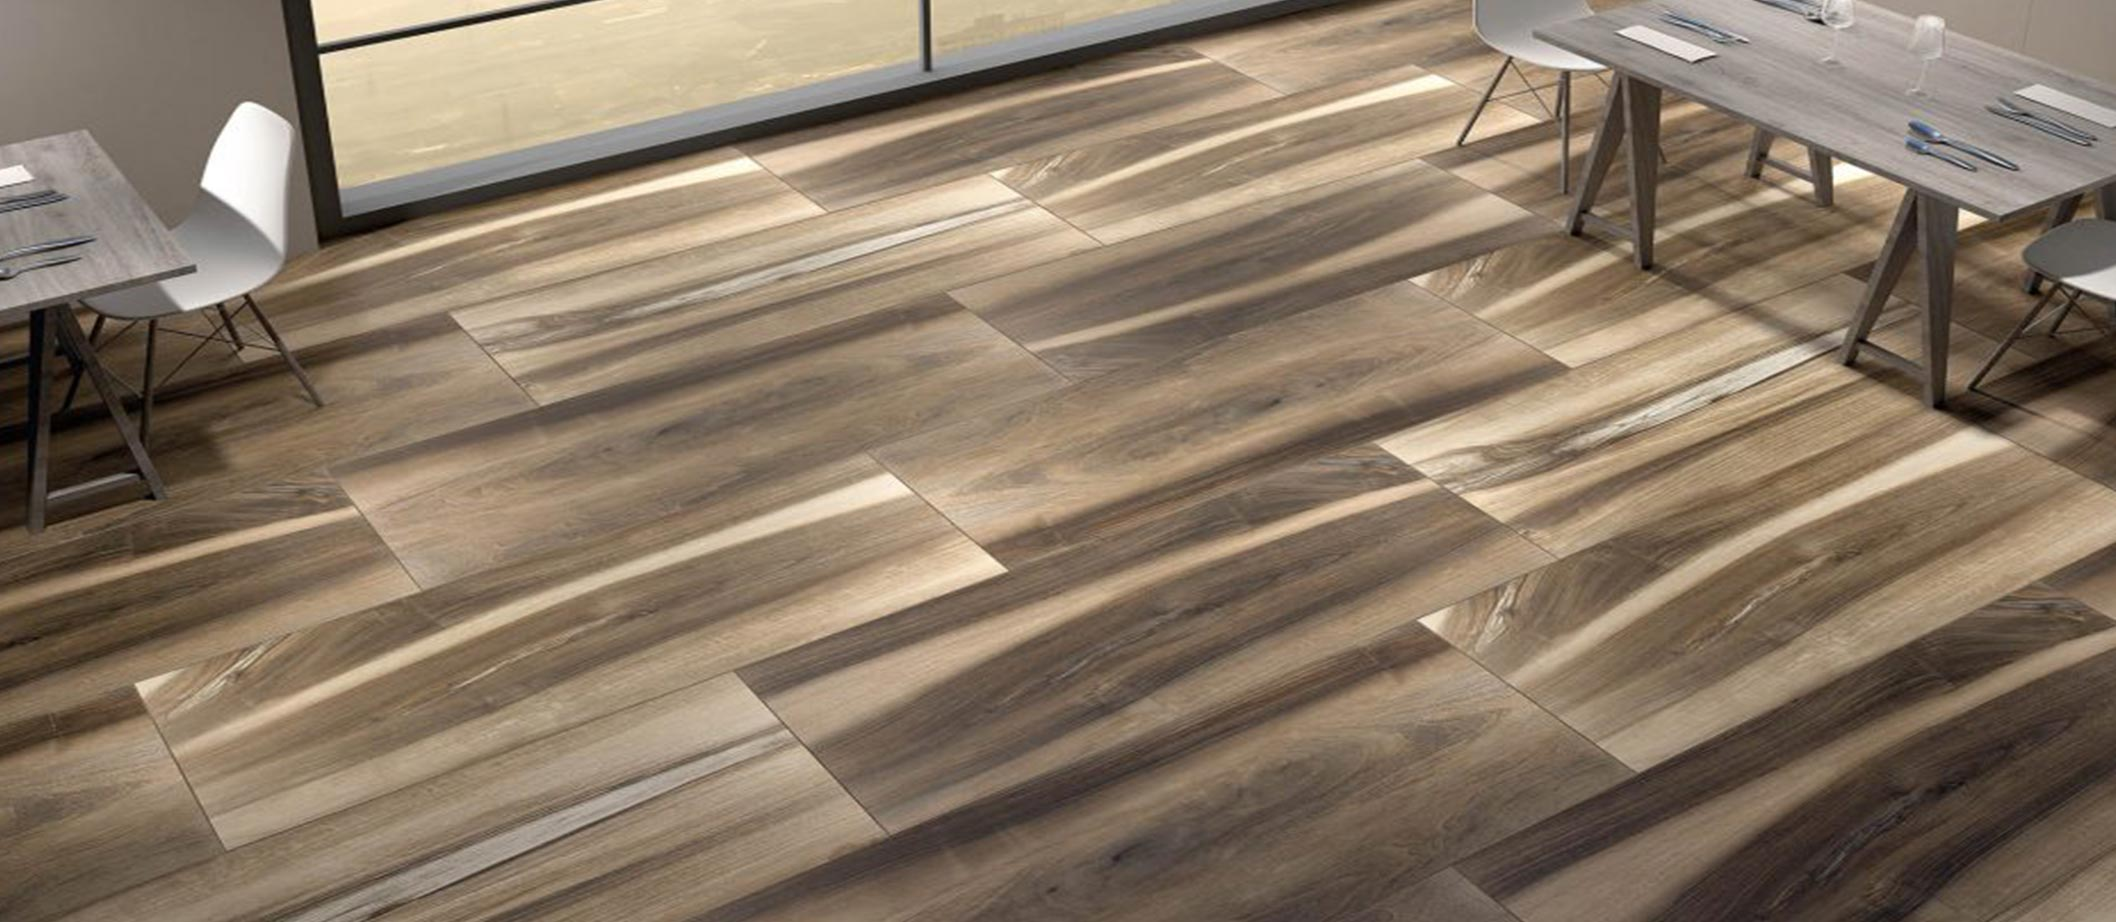 Granite Floor Tiles : Ceramic and granite tiles from cerdomus imitates wooden